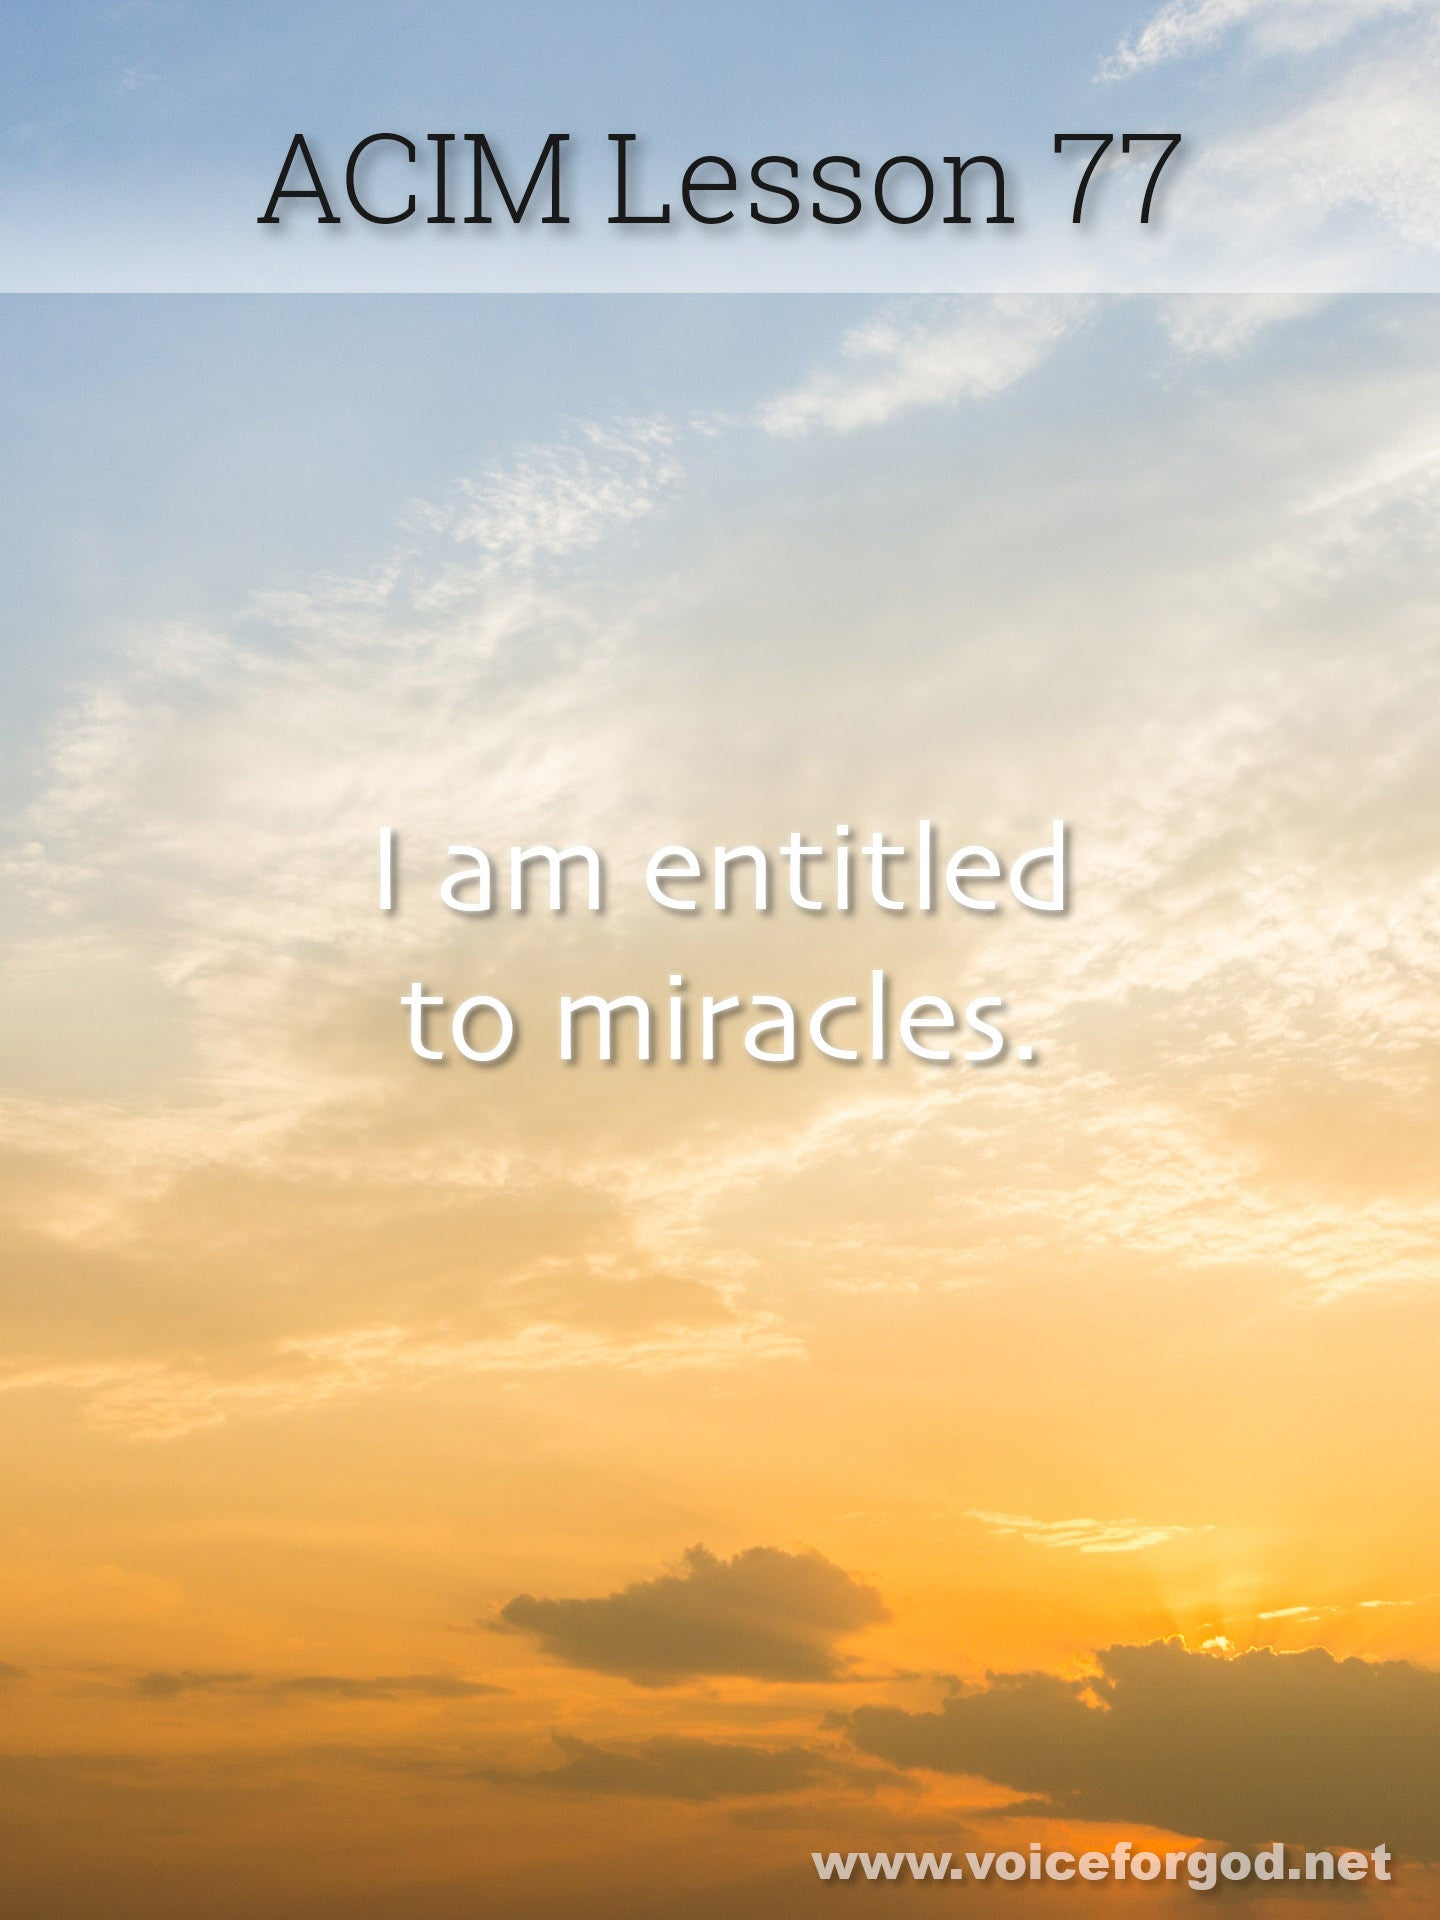 ACIM Lesson 77 - A Course in Miracles Workbook Lesson 77